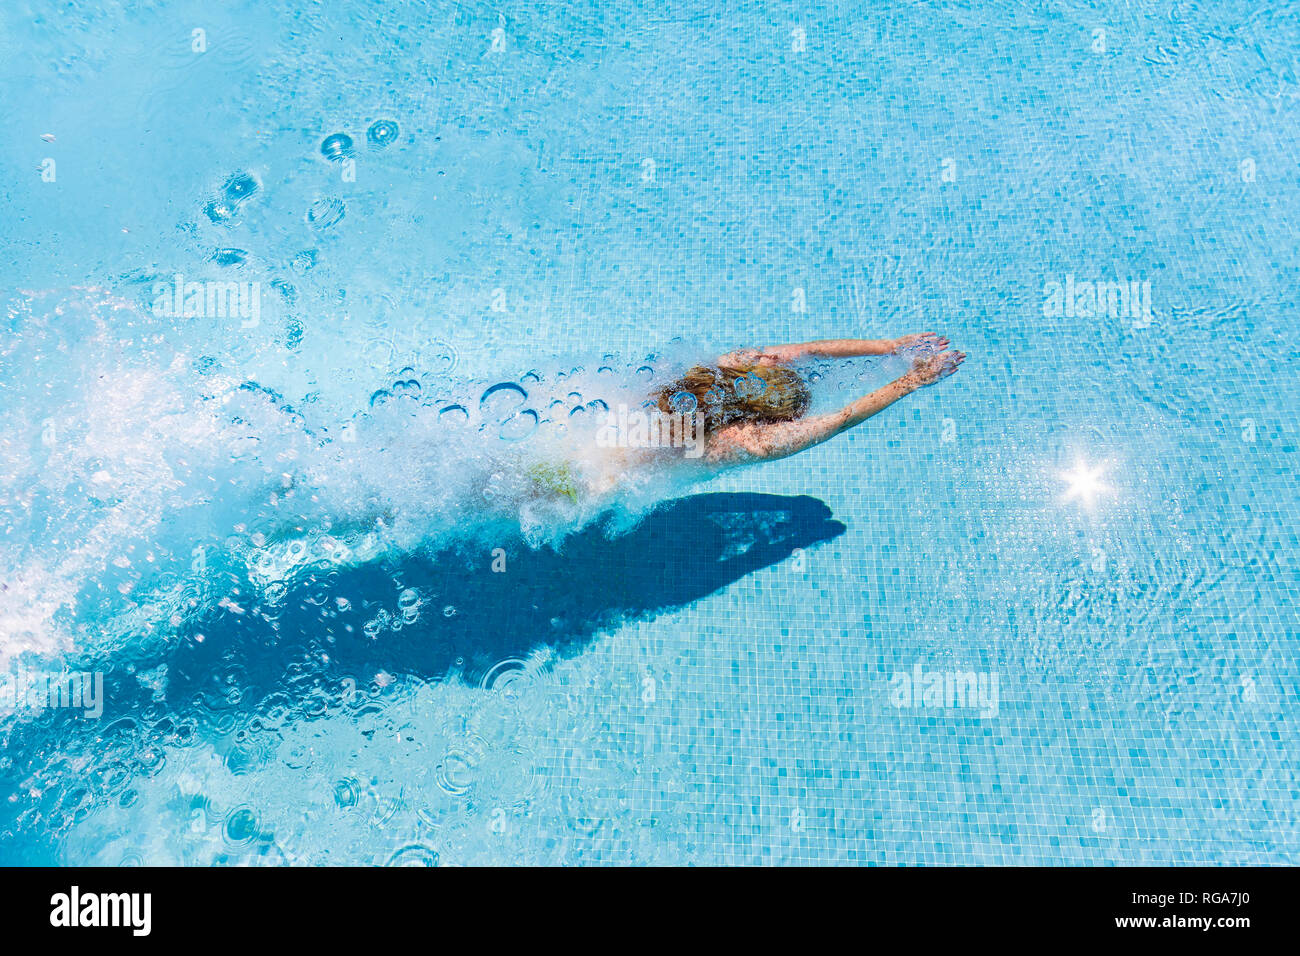 Spain, Málaga Province, Mondron,  woman diving into swimming pool creating bubbles - Stock Image